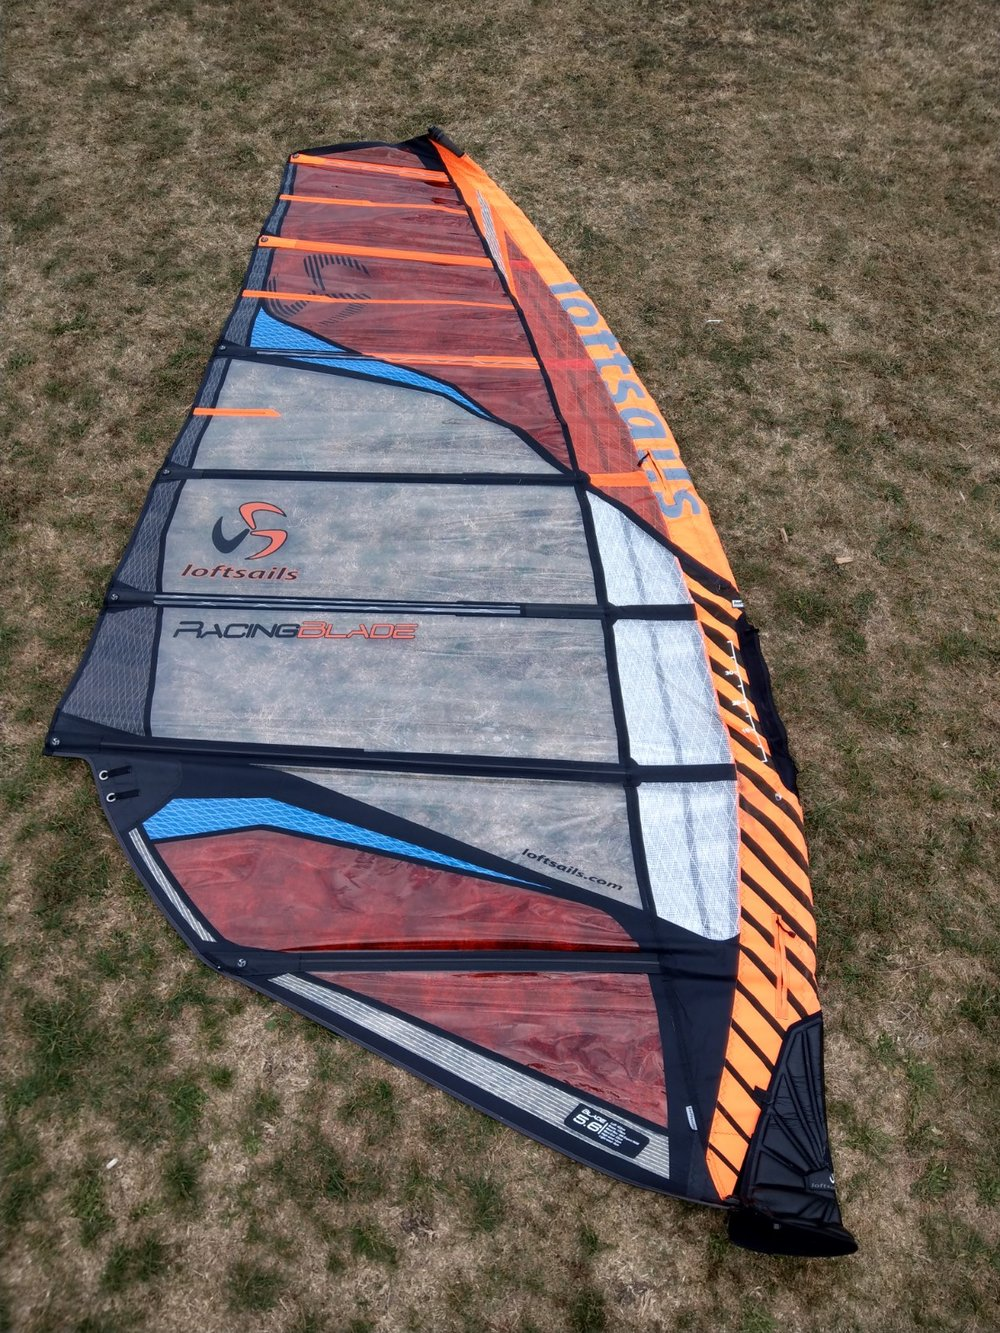 Loftsails racing blade 5.6